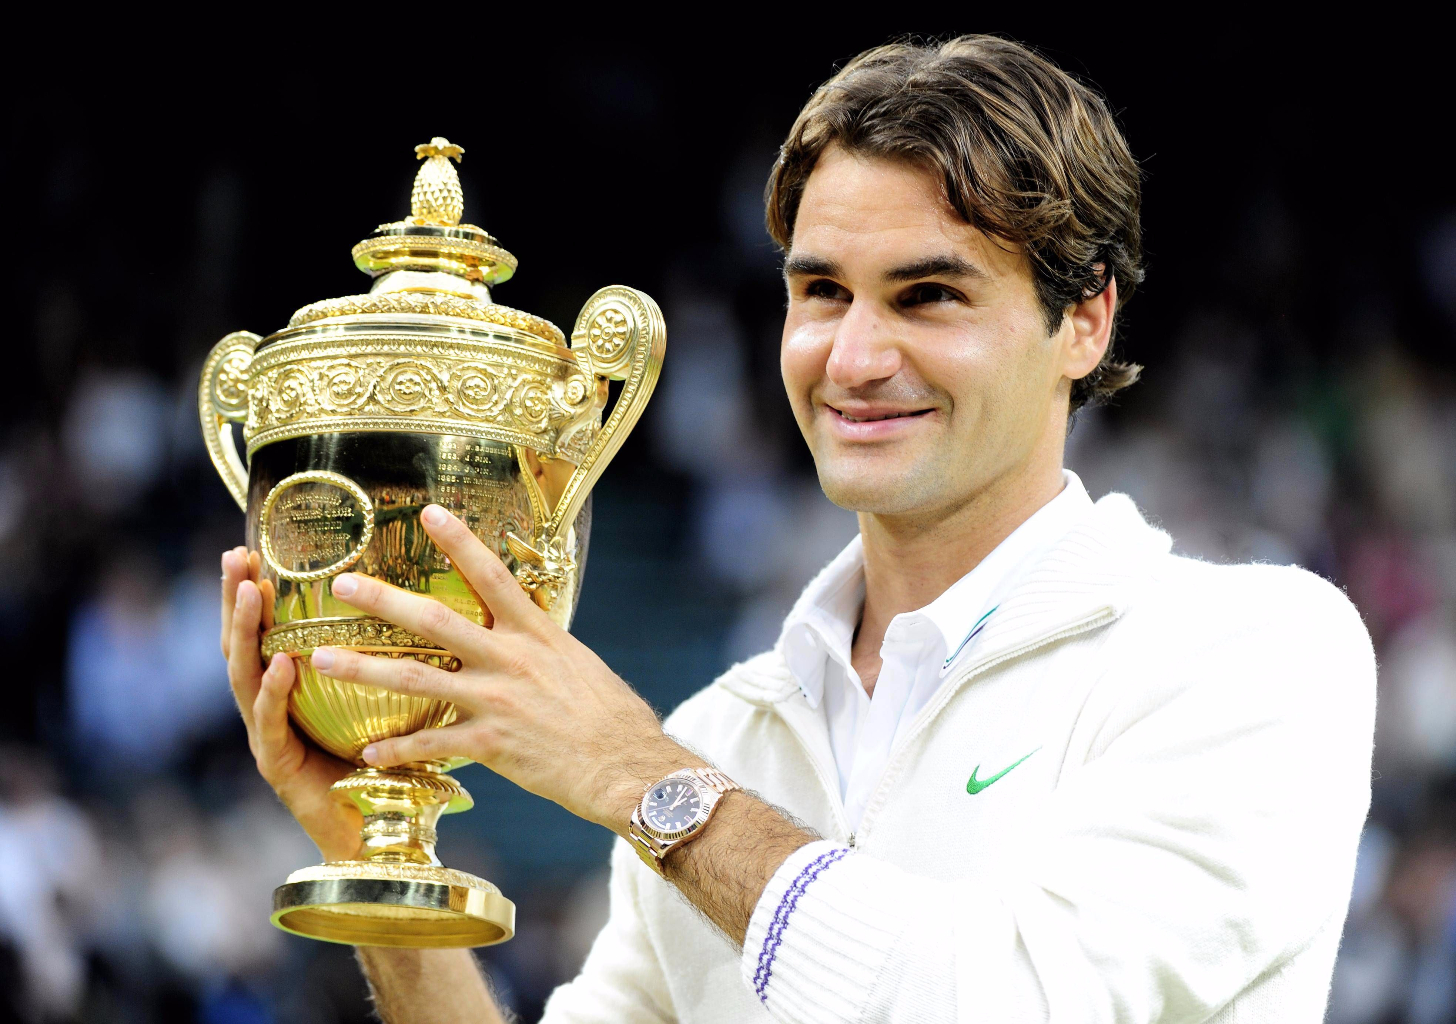 Switzerland's Roger Federer celebrates with his trophy after defeating Great Britain's Andy Murray in the Men's Singles Final during day thirteen of the 2012 Wimbledon Championships at the All England Lawn Tennis Club, Wimbledon. PRESS ASSOCIATION Photo. Picture date: Sunday July 8, 2012. See PA story TENNIS Wimbledon. Photo credit should read: Clive Rose/POOL/PA Wire. RESTRICTIONS: Use subject to restrictions. Editorial use only, including for mobile devices / apps and books. Commercial use only with prior approval. Call +44 (0)1158 447447 for further information.